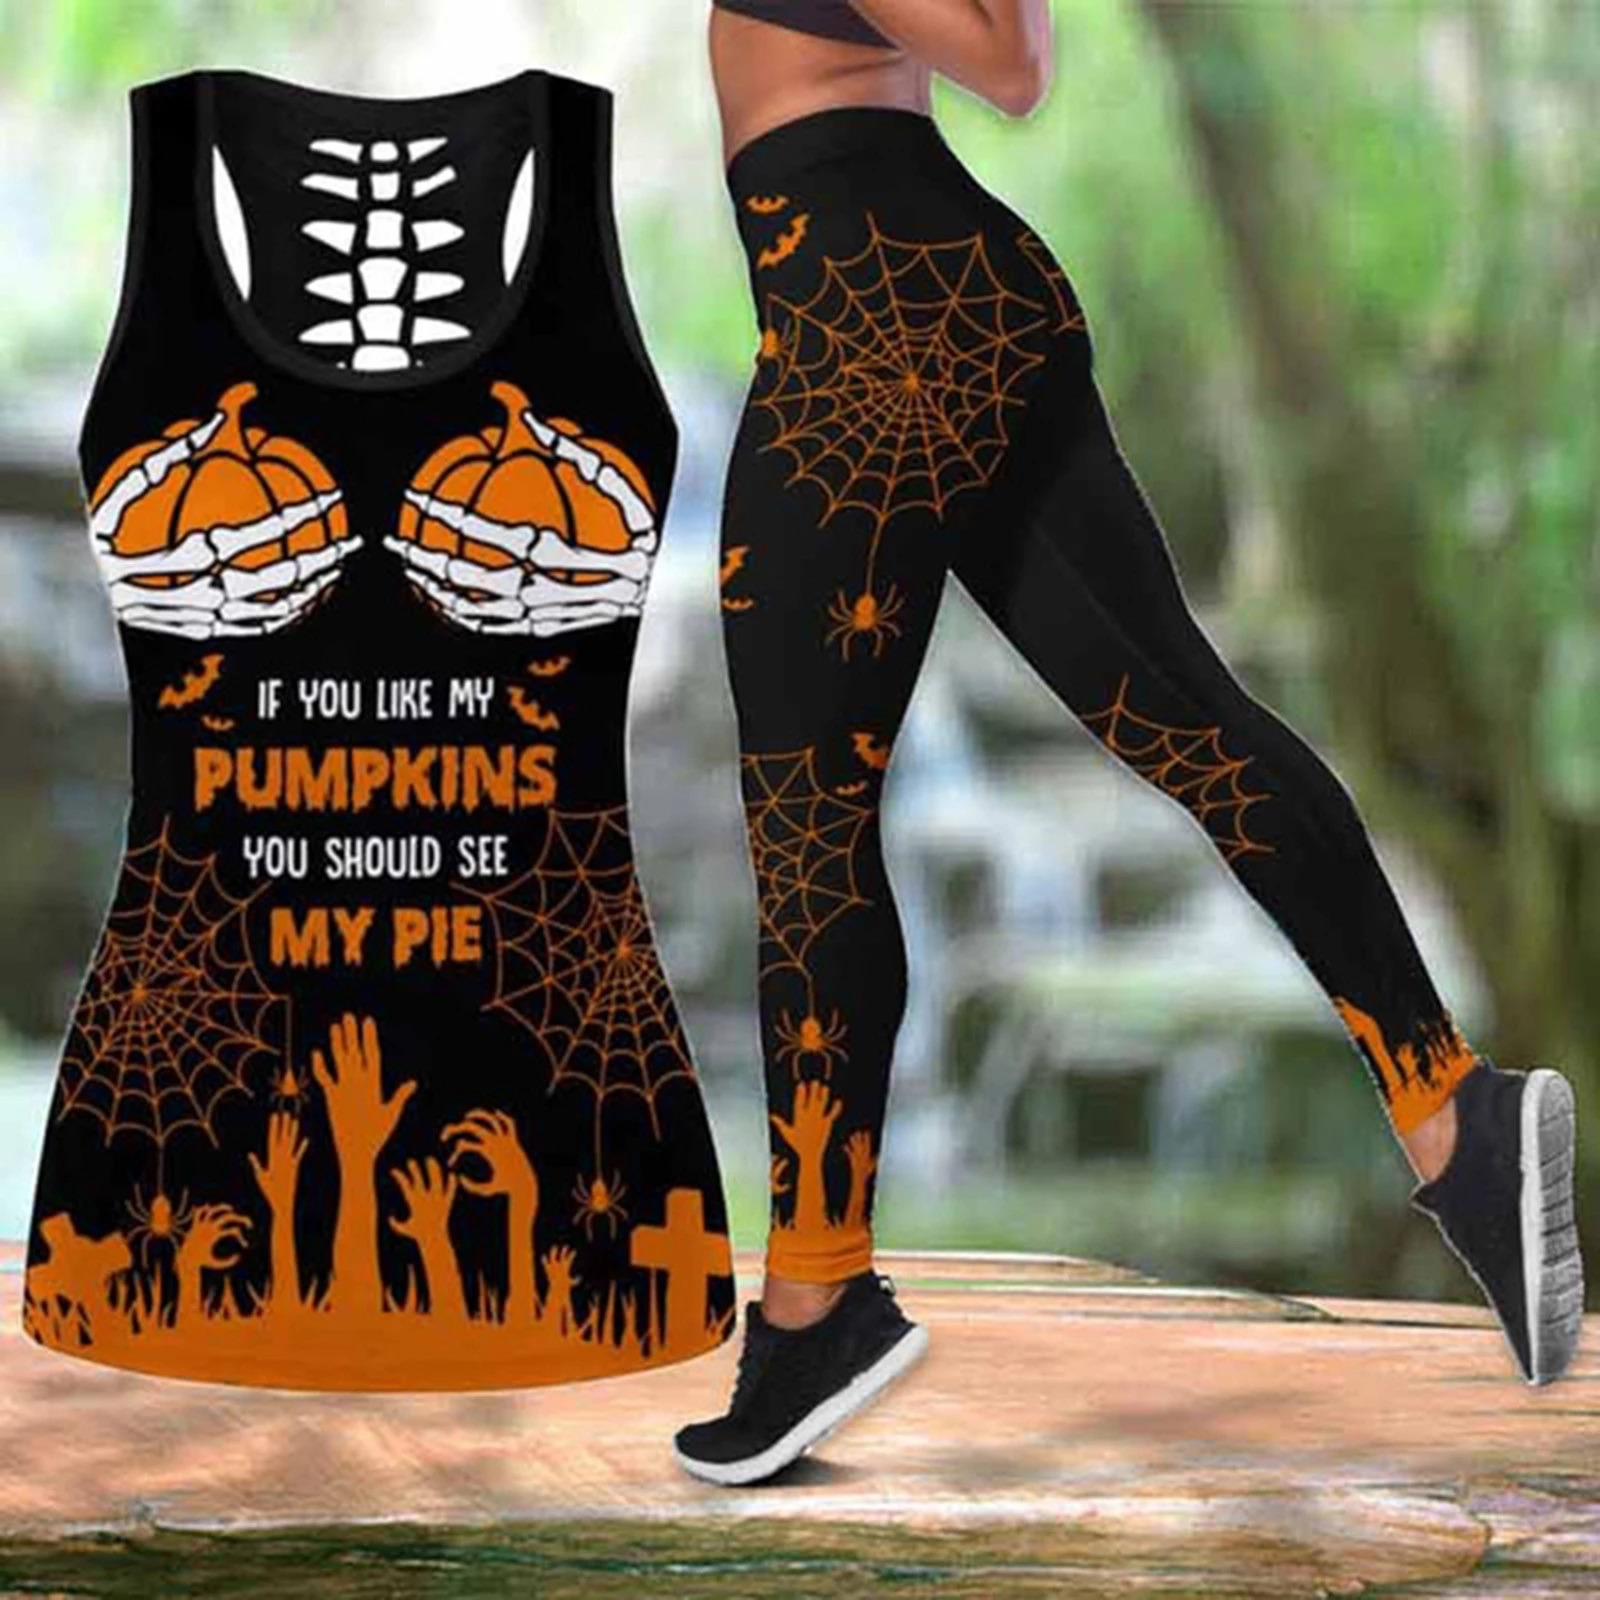 If you like my pumpkins you should see my pie halloween legging and hollow tank top - Hothot 160821